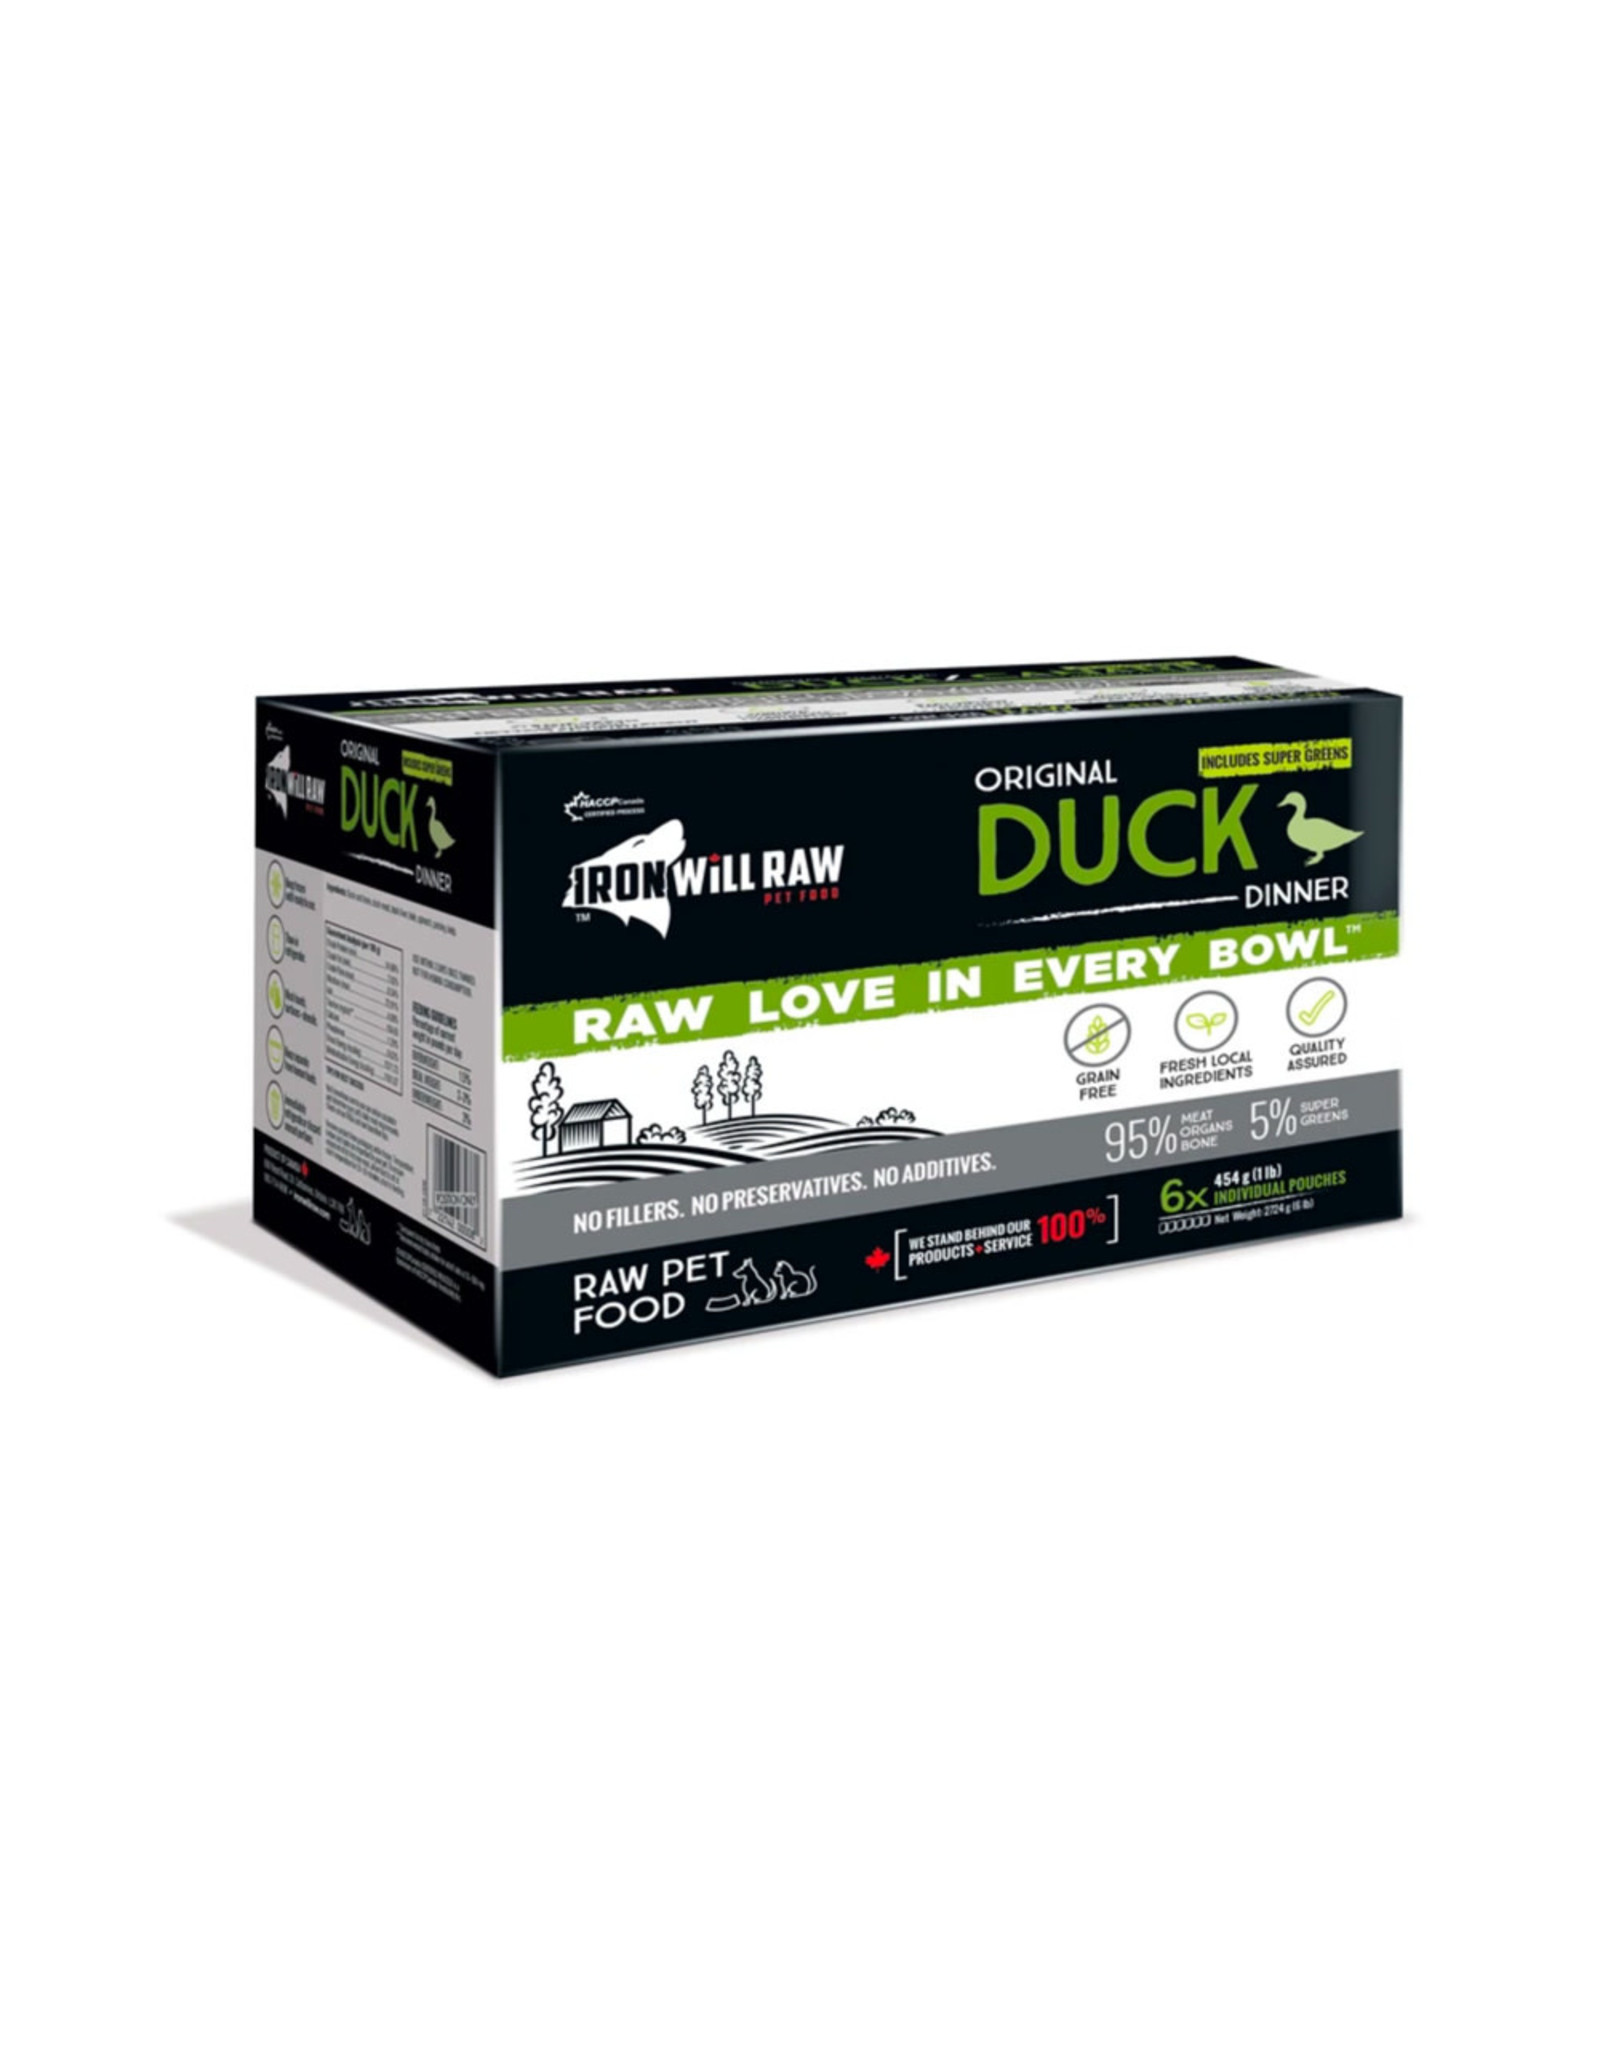 IRON WILL RAW IWR DUCK 6LB